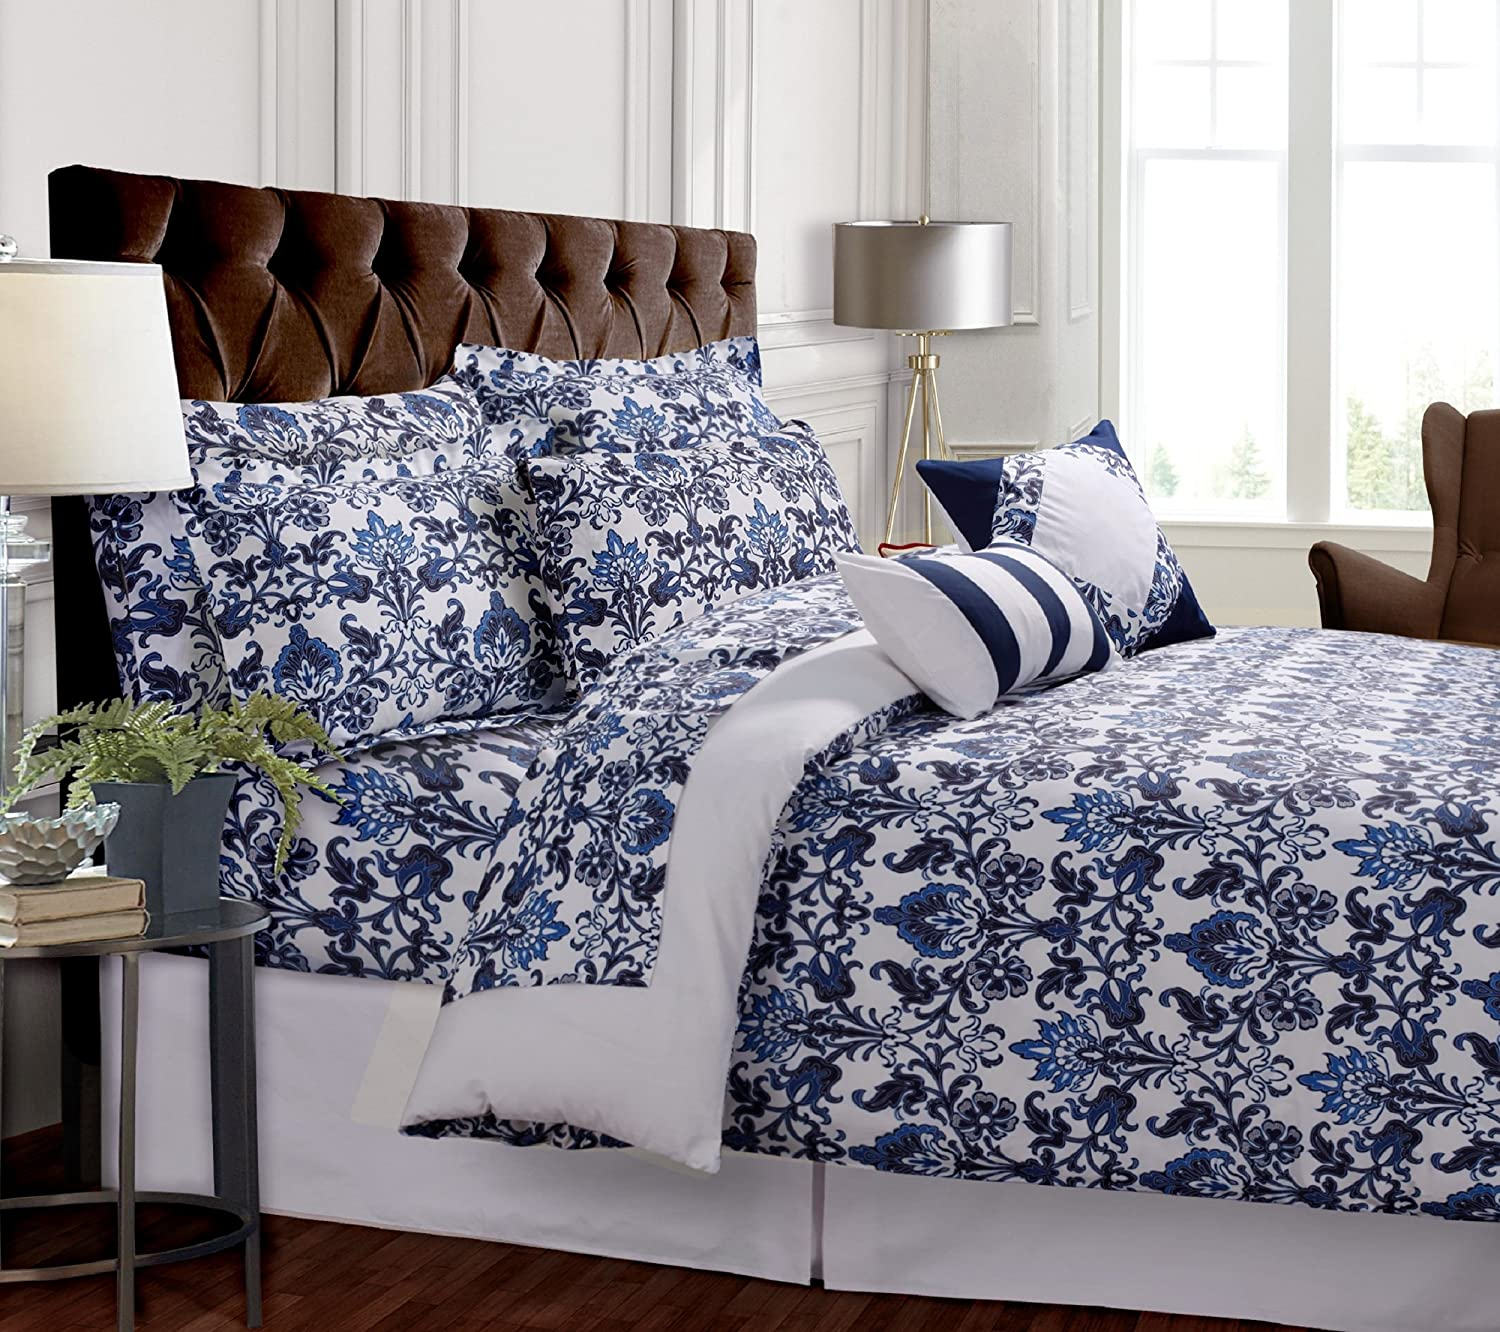 TRIBECA LIVING Catalina 5-Piece Egyptian Cotton Percale Printed Duvet Cover Set King Marwah Corporation CATL5PDSKI